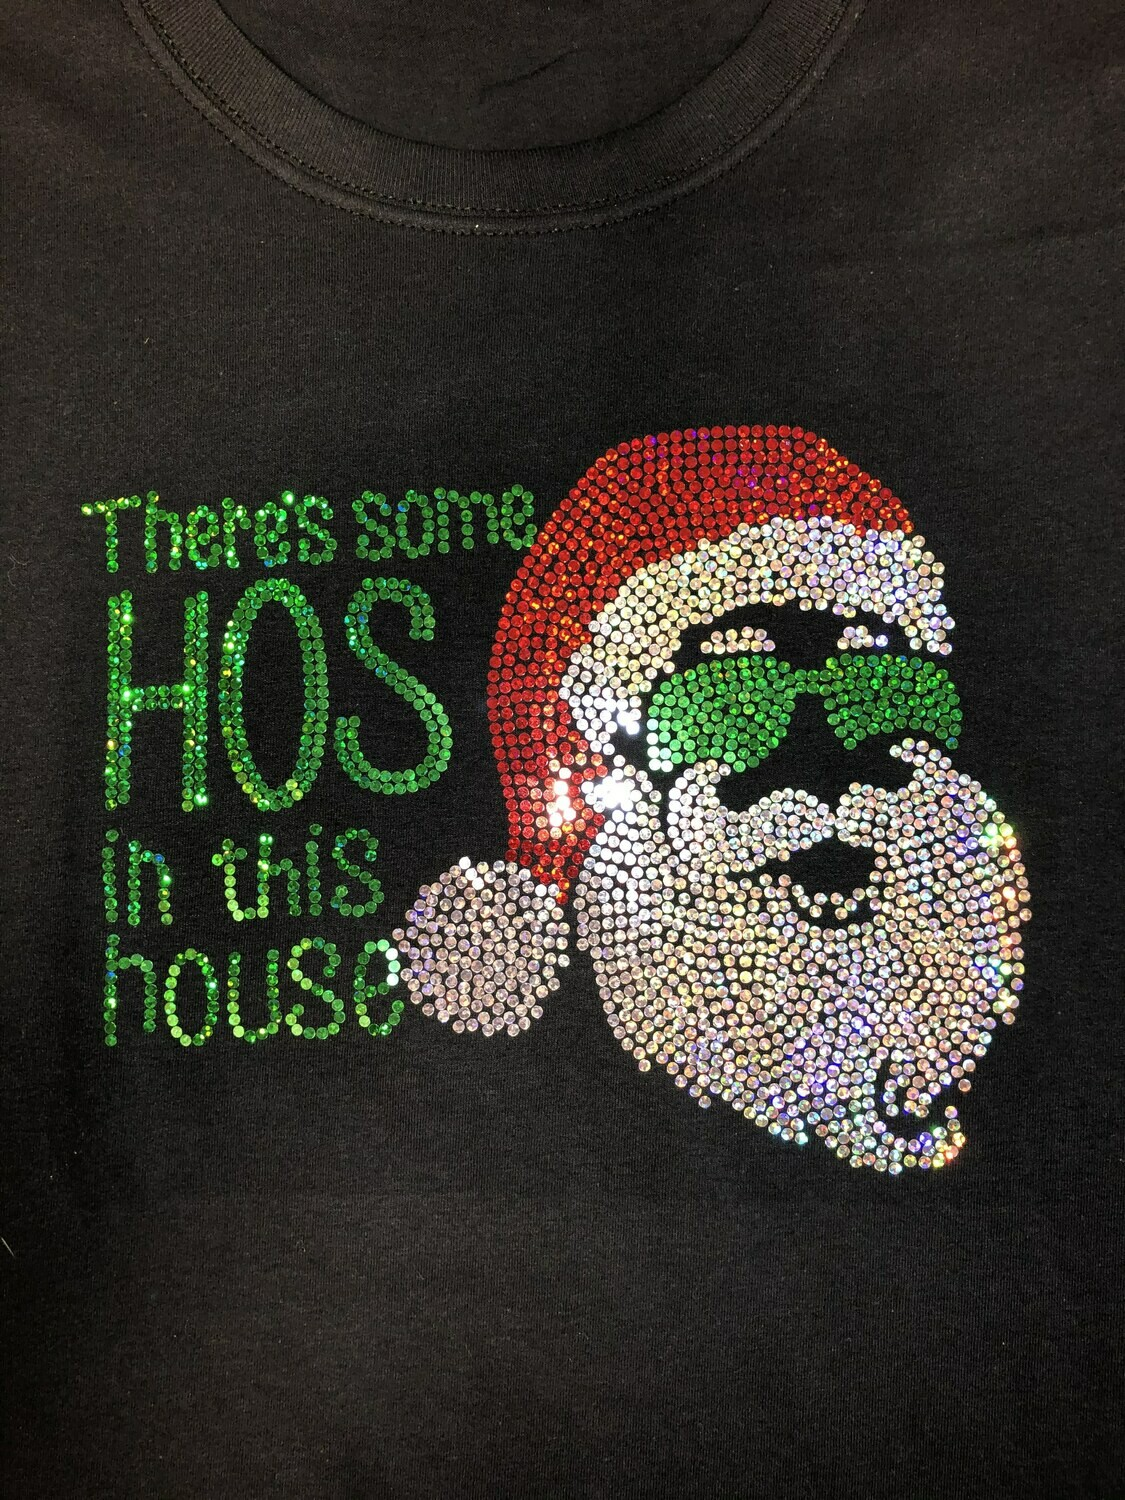 There's Some Hos In This House Spangle shirt